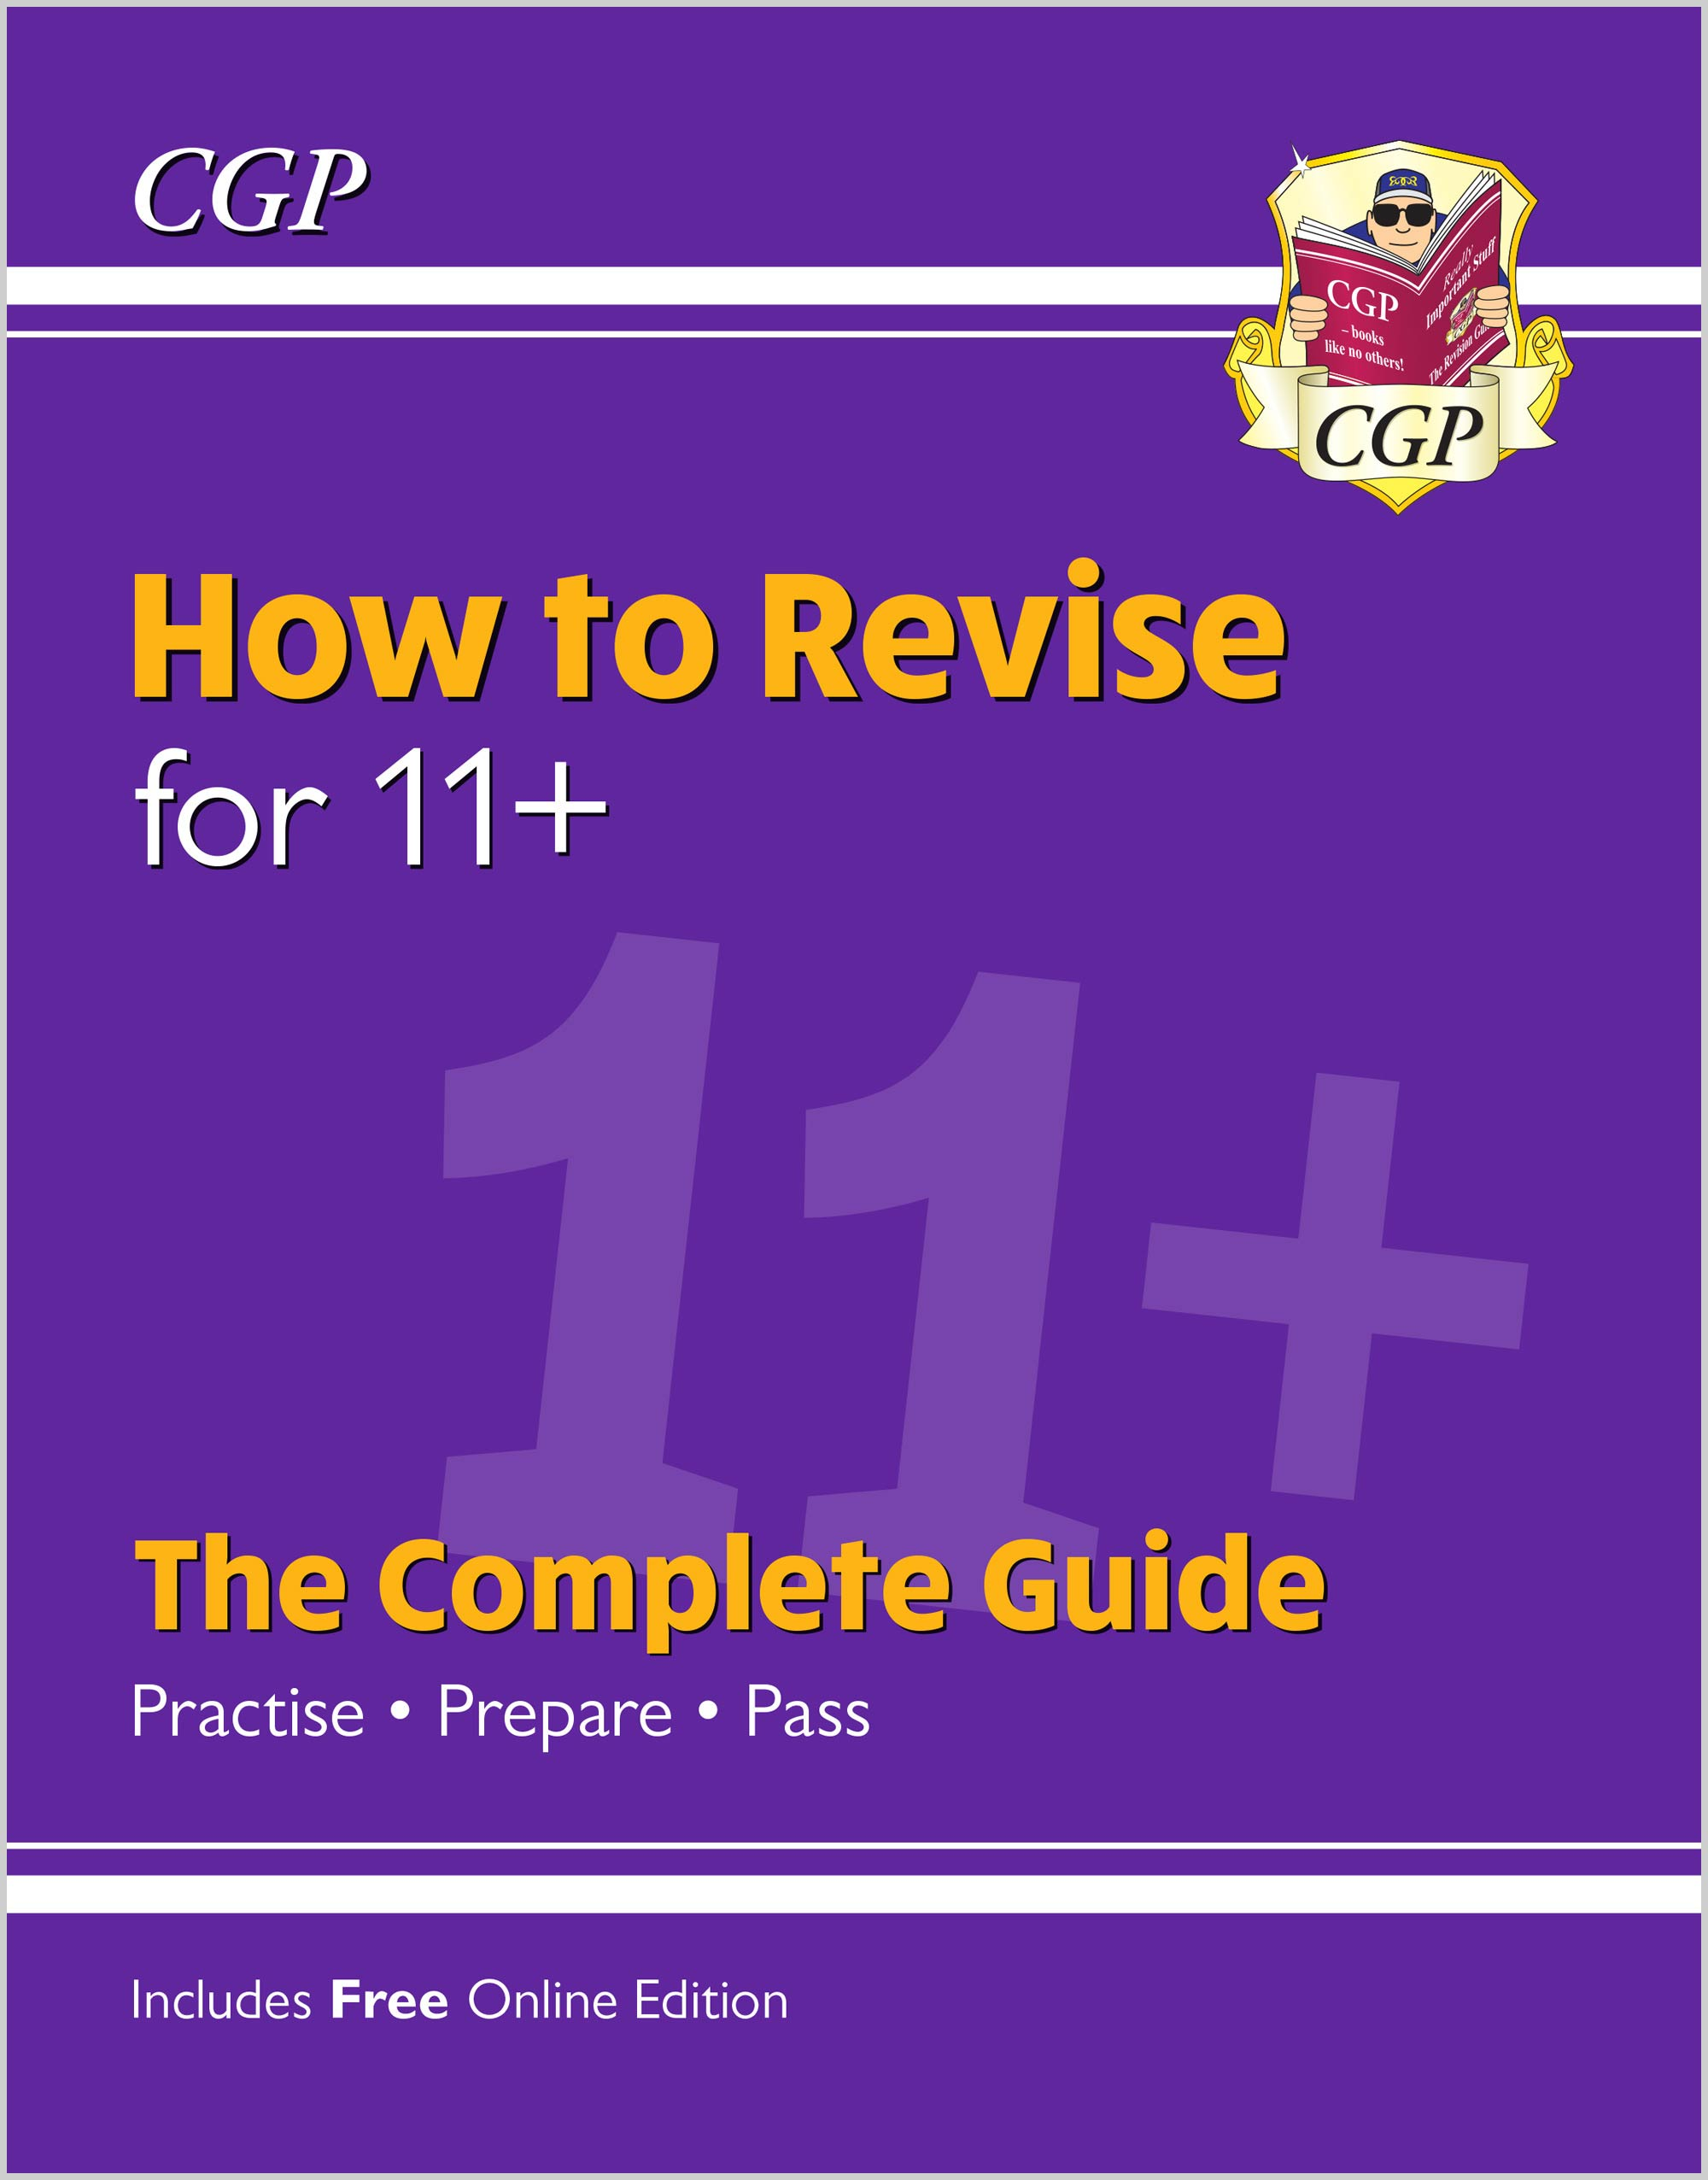 XHRE1 - New How to Revise for 11+: The Complete Guide (with Online Edition)